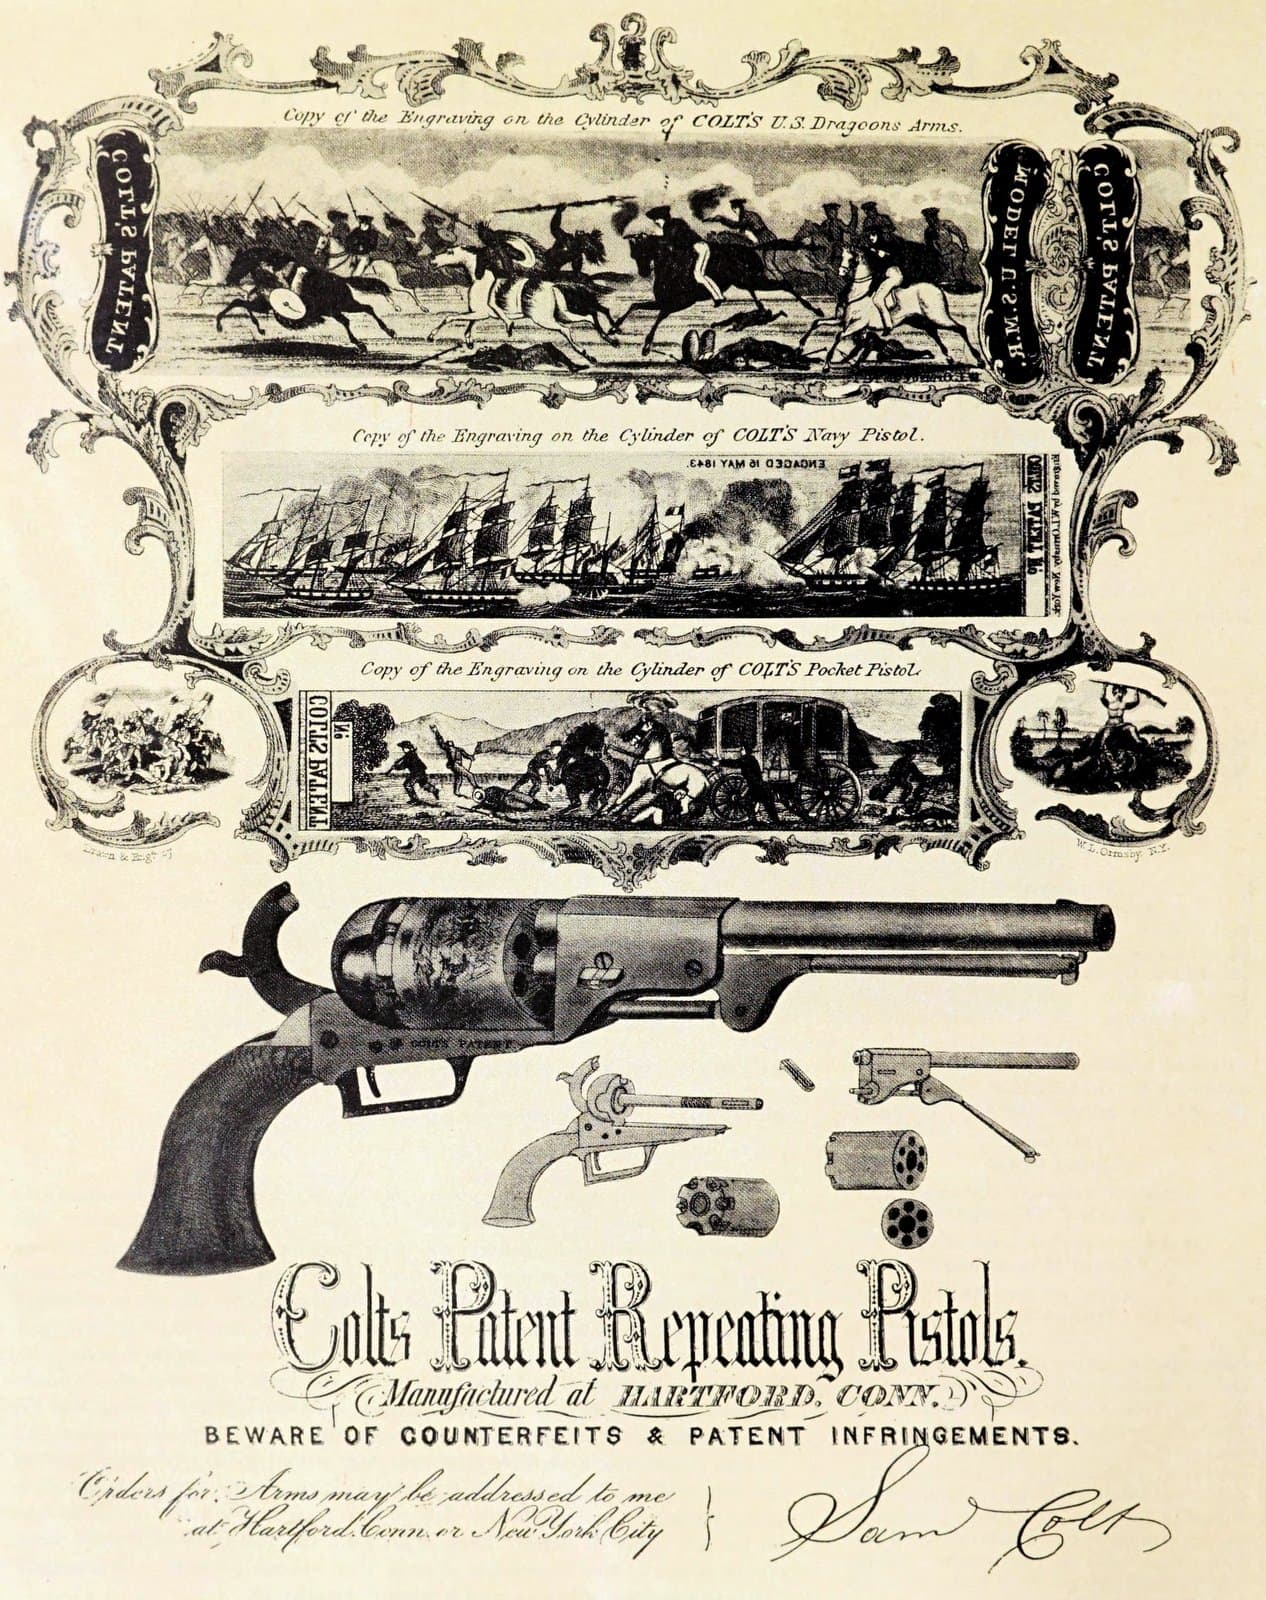 Samuel Colt's repeating pistols - The gun that made him famous